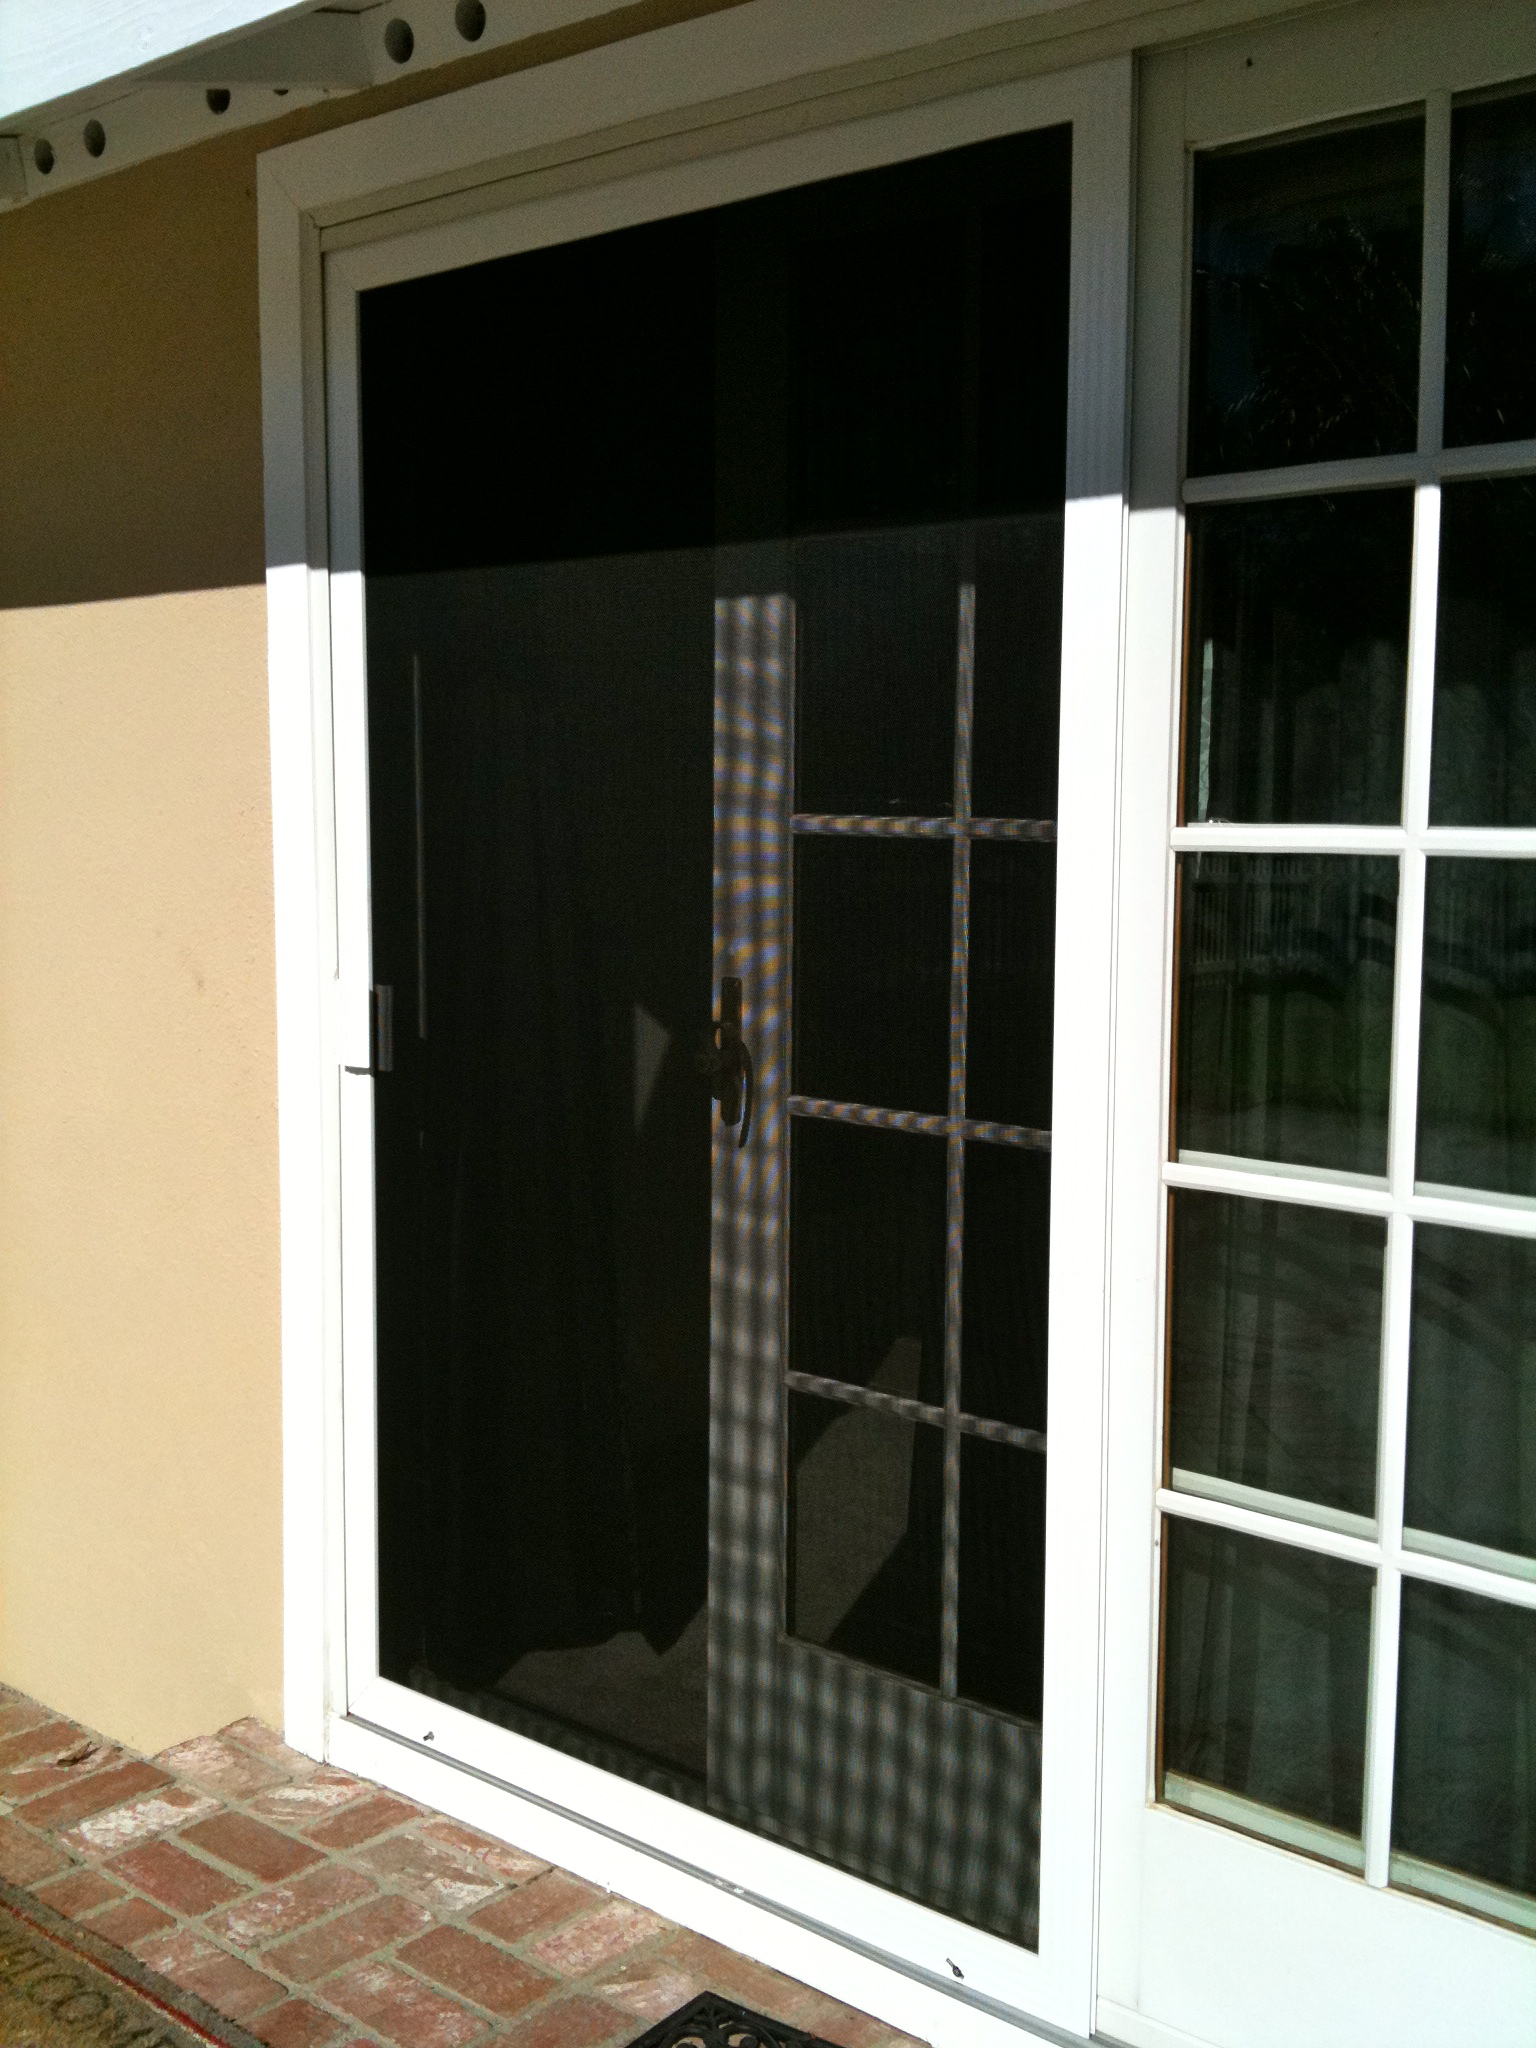 Screen Doors in Ojai Screen Door and Window Screen Repair Service